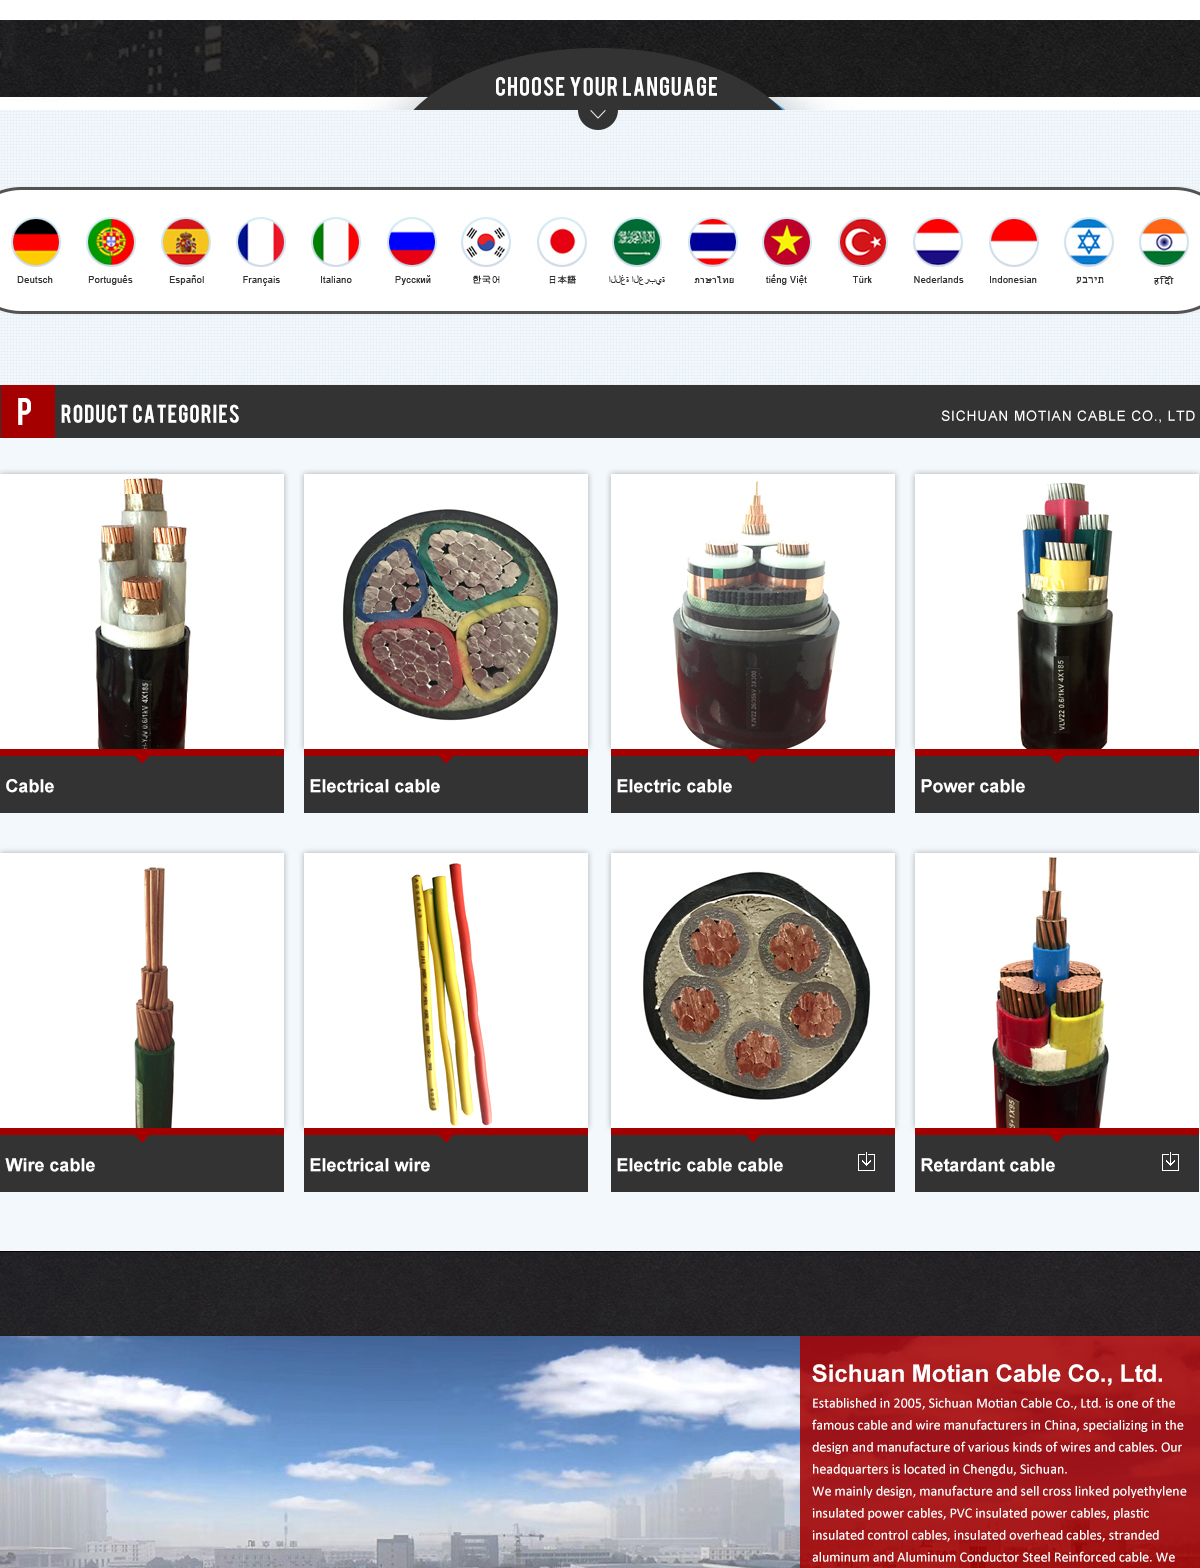 Sichuan Motian Cable Co., Ltd. - Cable, Wire